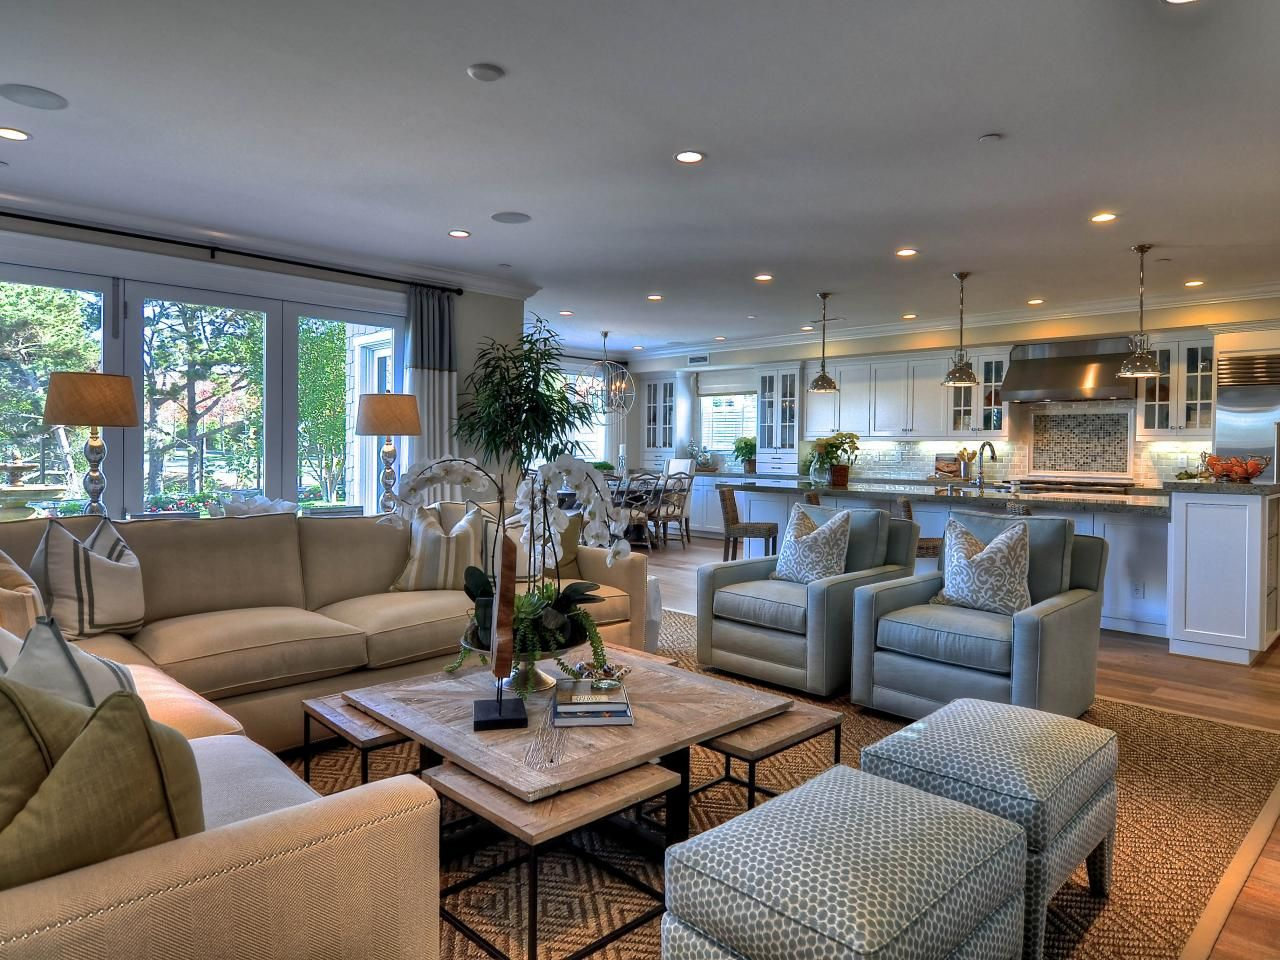 Beach Decor Is Found In The Details In This Spacious Family Room Open Concept Living Room Open Living Room Family Room Design Open living room furniture layout